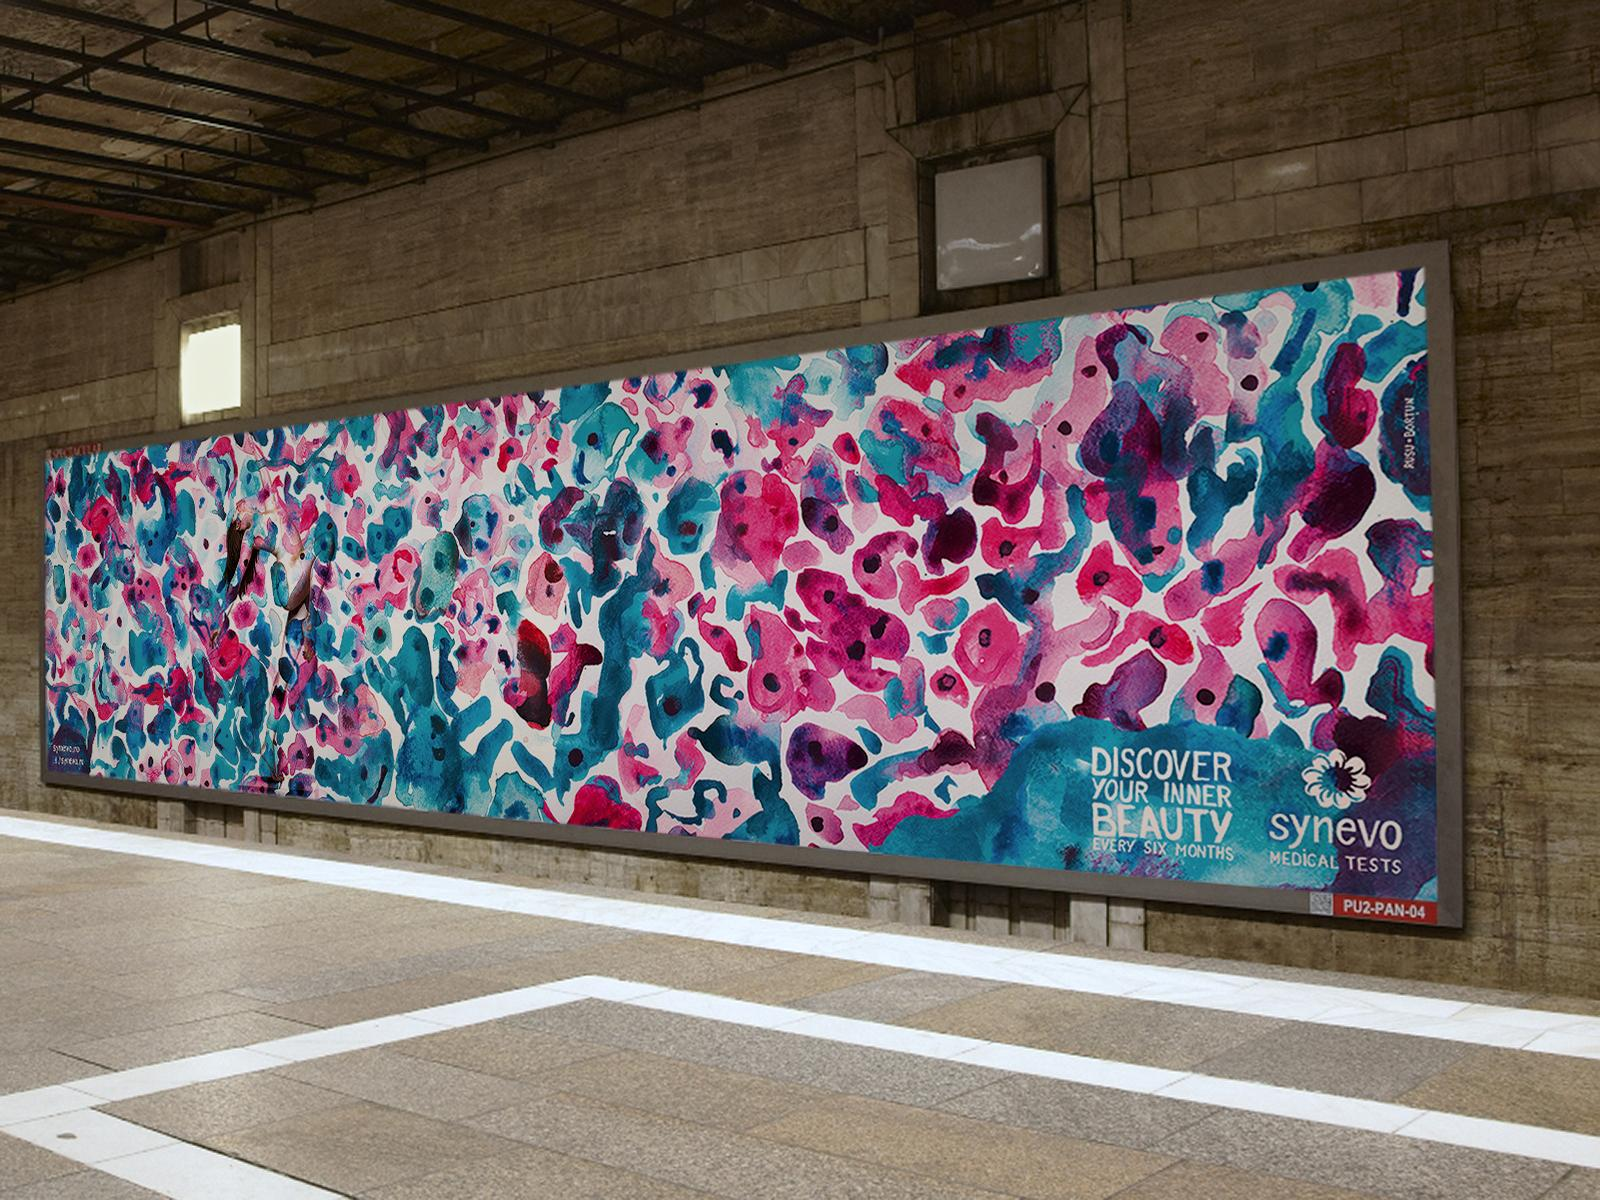 Synevo Medical Labs Outdoor Ad -  The Inner Beauty Exhibition, 3